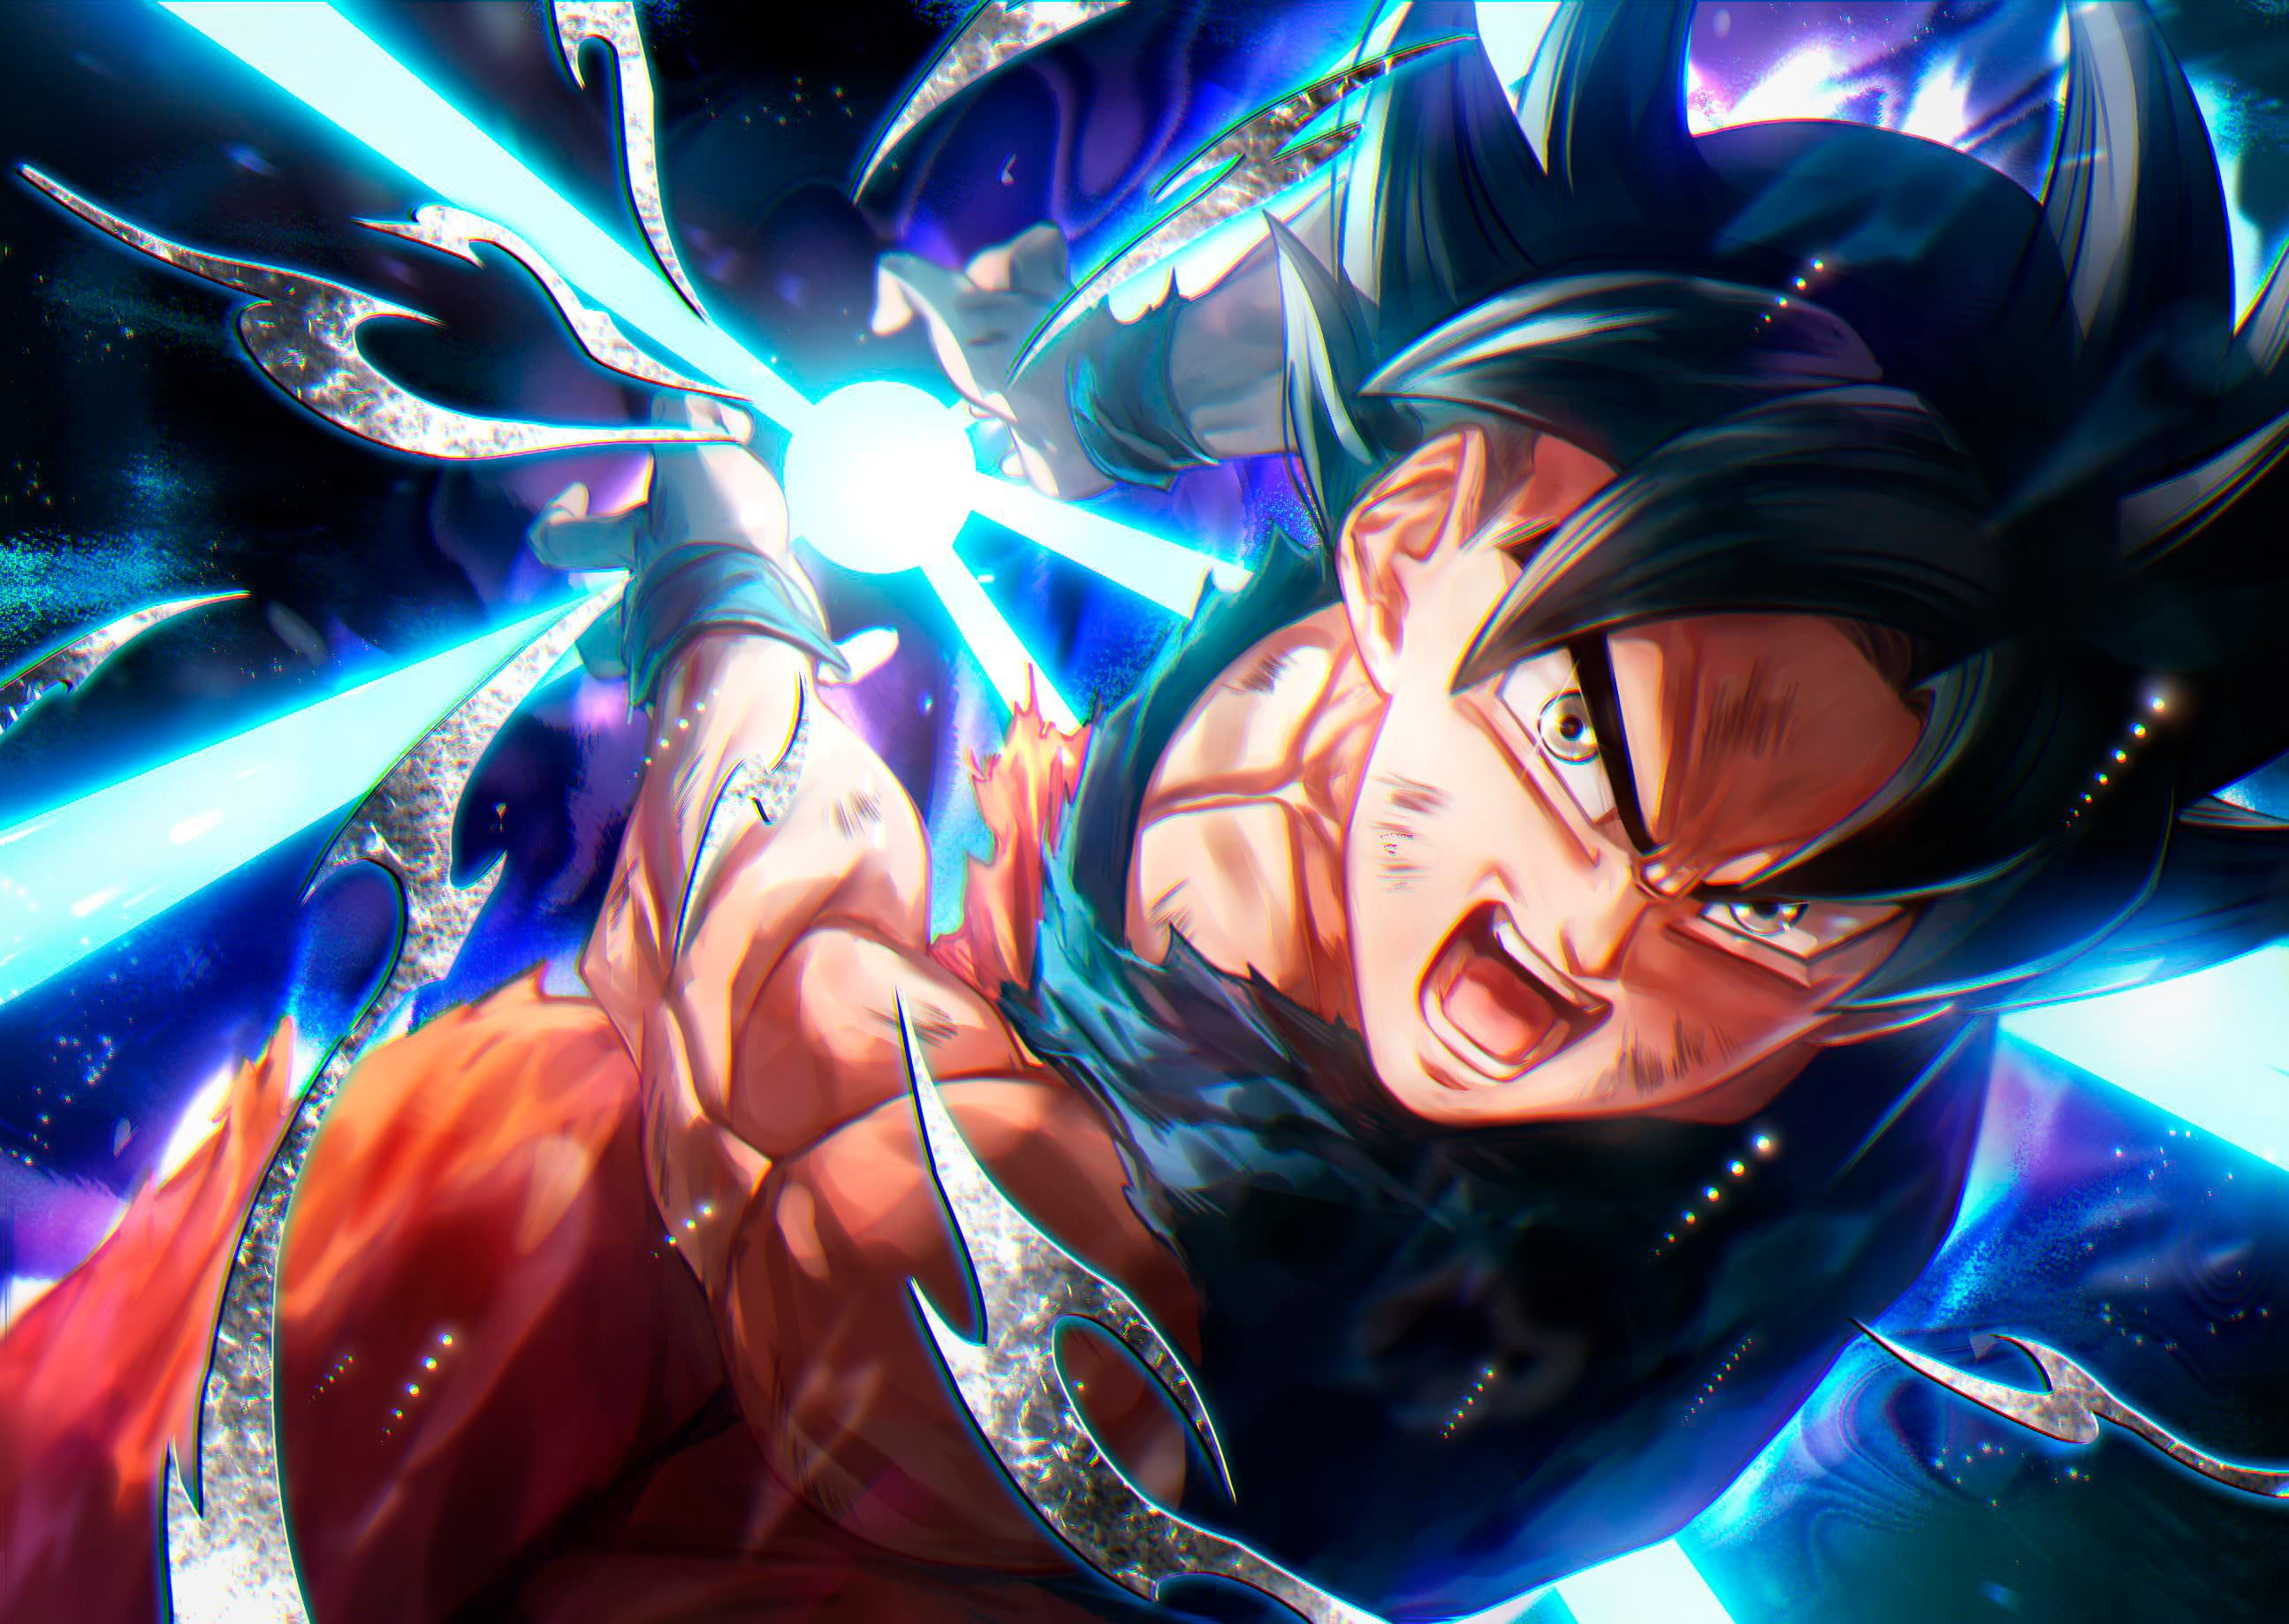 Dragon Ball Dragon Ball Super Ultra Instinct Son Goku 2k Wallpaper Hdwallpaper Dragon Ball Wallpapers Dragon Ball Super Manga Dragon Ball Super Wallpapers